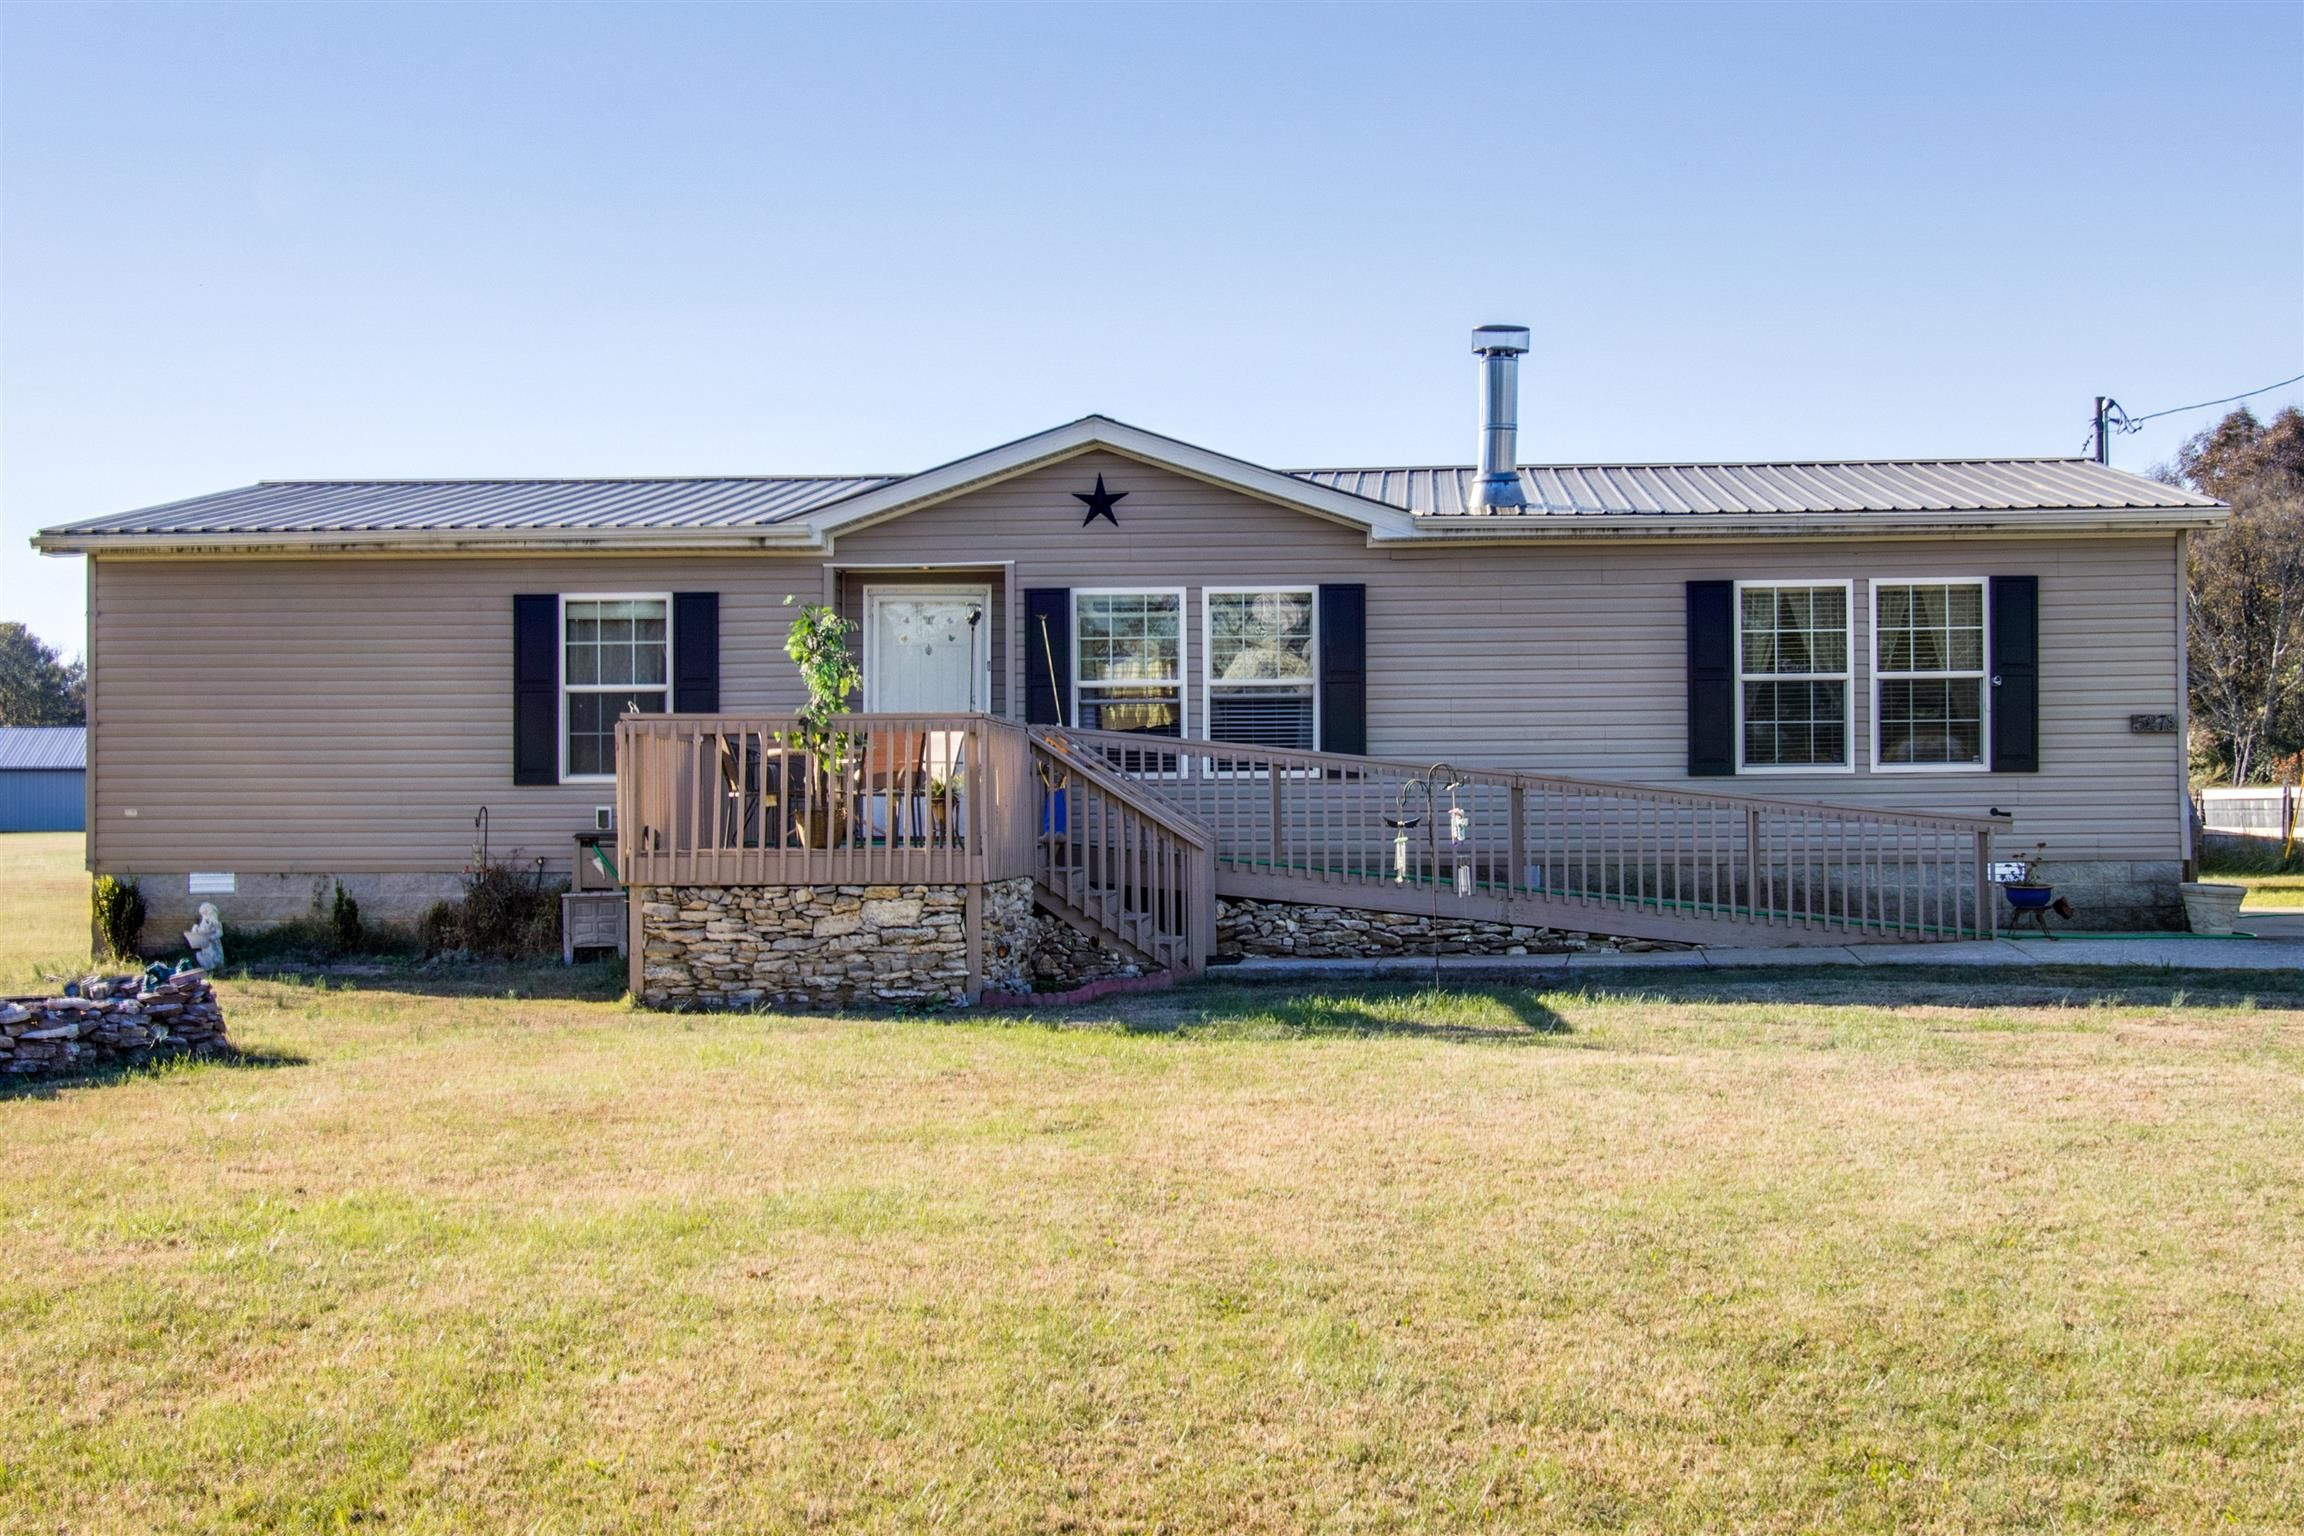 5278 Tobe Robertson Rd Columbia Tn 38401 4 Bed 2 Bath 190 000 Like New On Almost 3 Estate Homes Real Estate Property